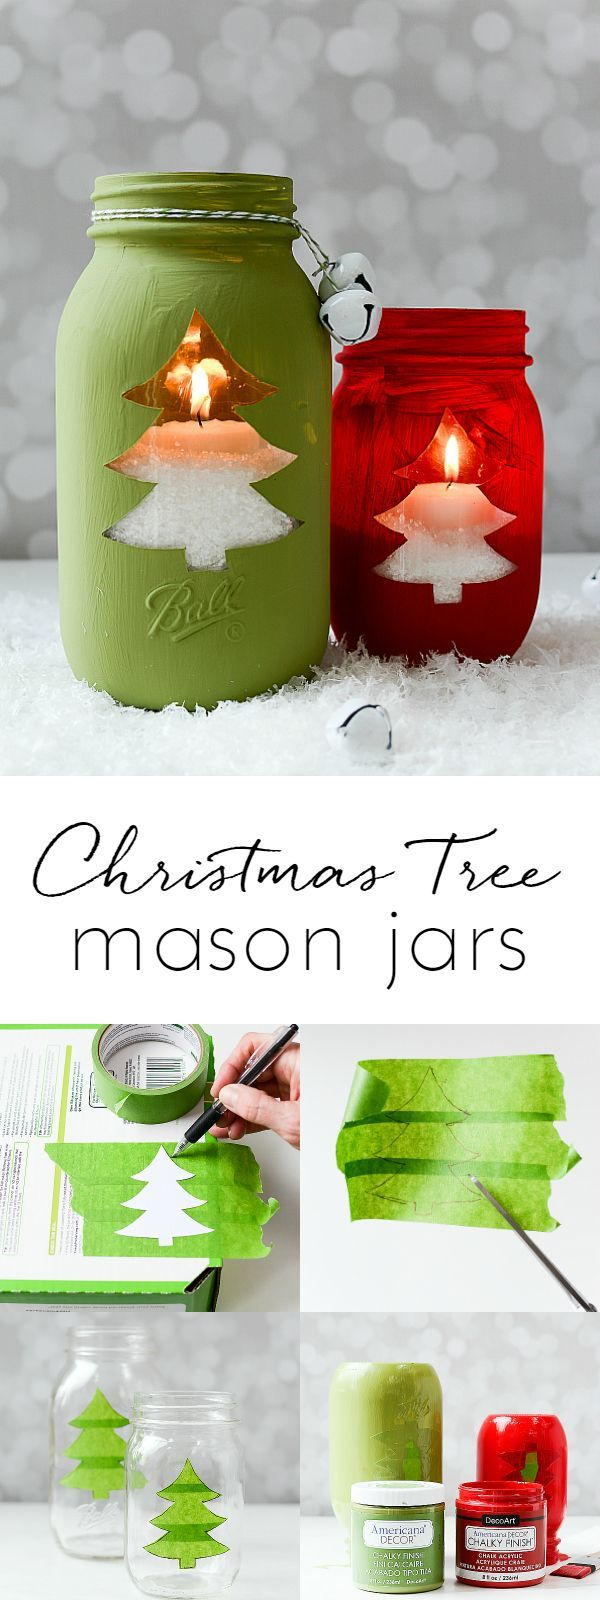 Pinned by ❃❀CM❁✿⊱Christmas Tree Mason Votive Jar – Christmas Tree Cutting Candles @Mason Jar Craf …, #amason #tree #candles #couping #mason #wheel